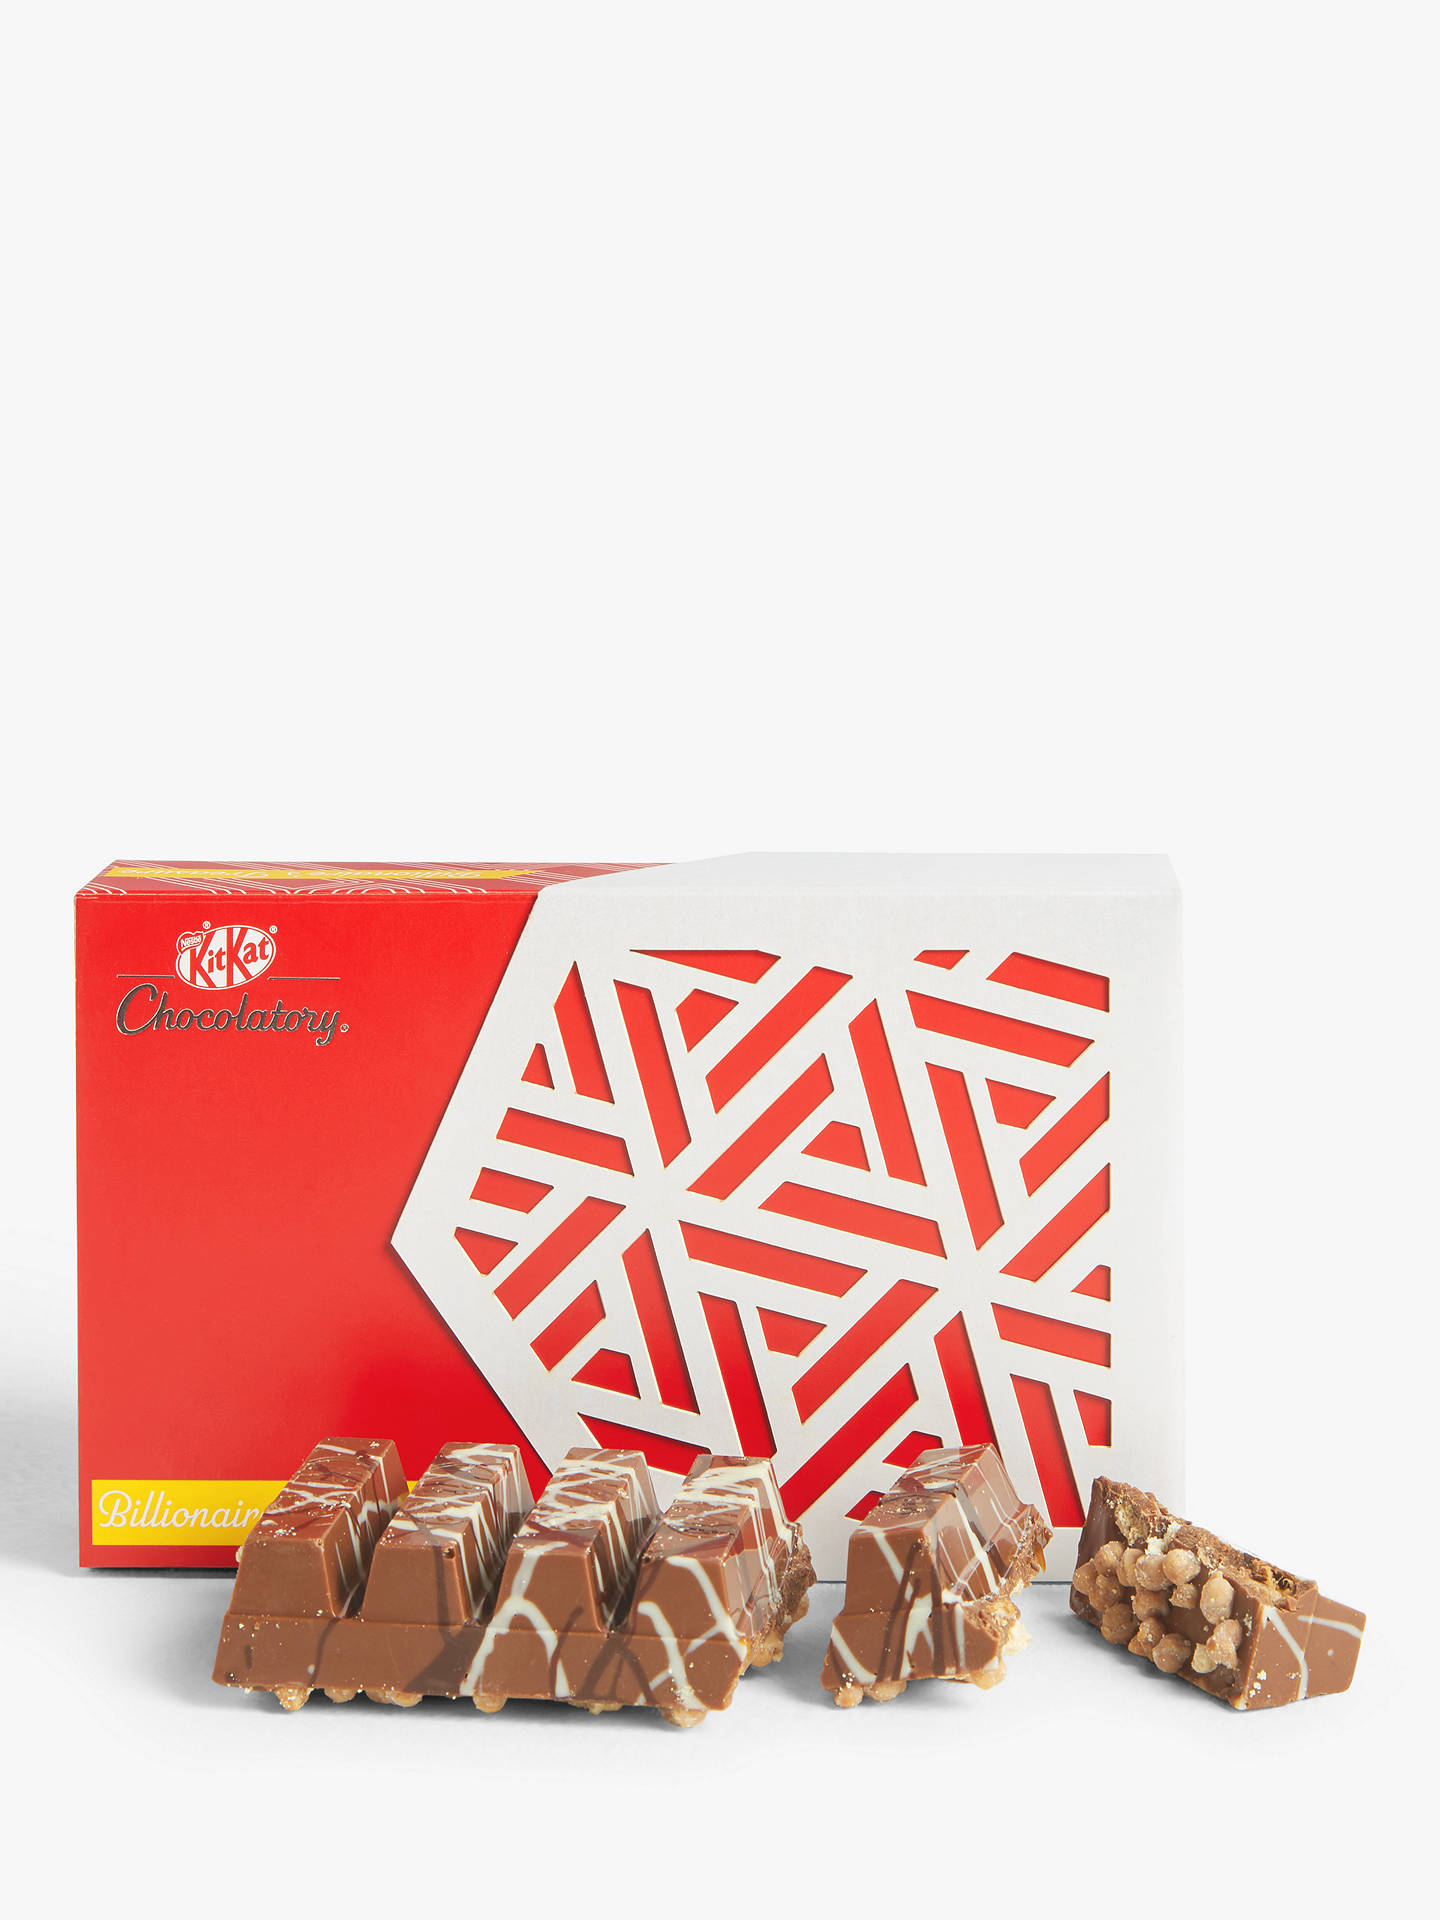 Buy KitKat Chocolatory Billionaire's Treasure, 6 Finger Pack, 74g Online at johnlewis.com